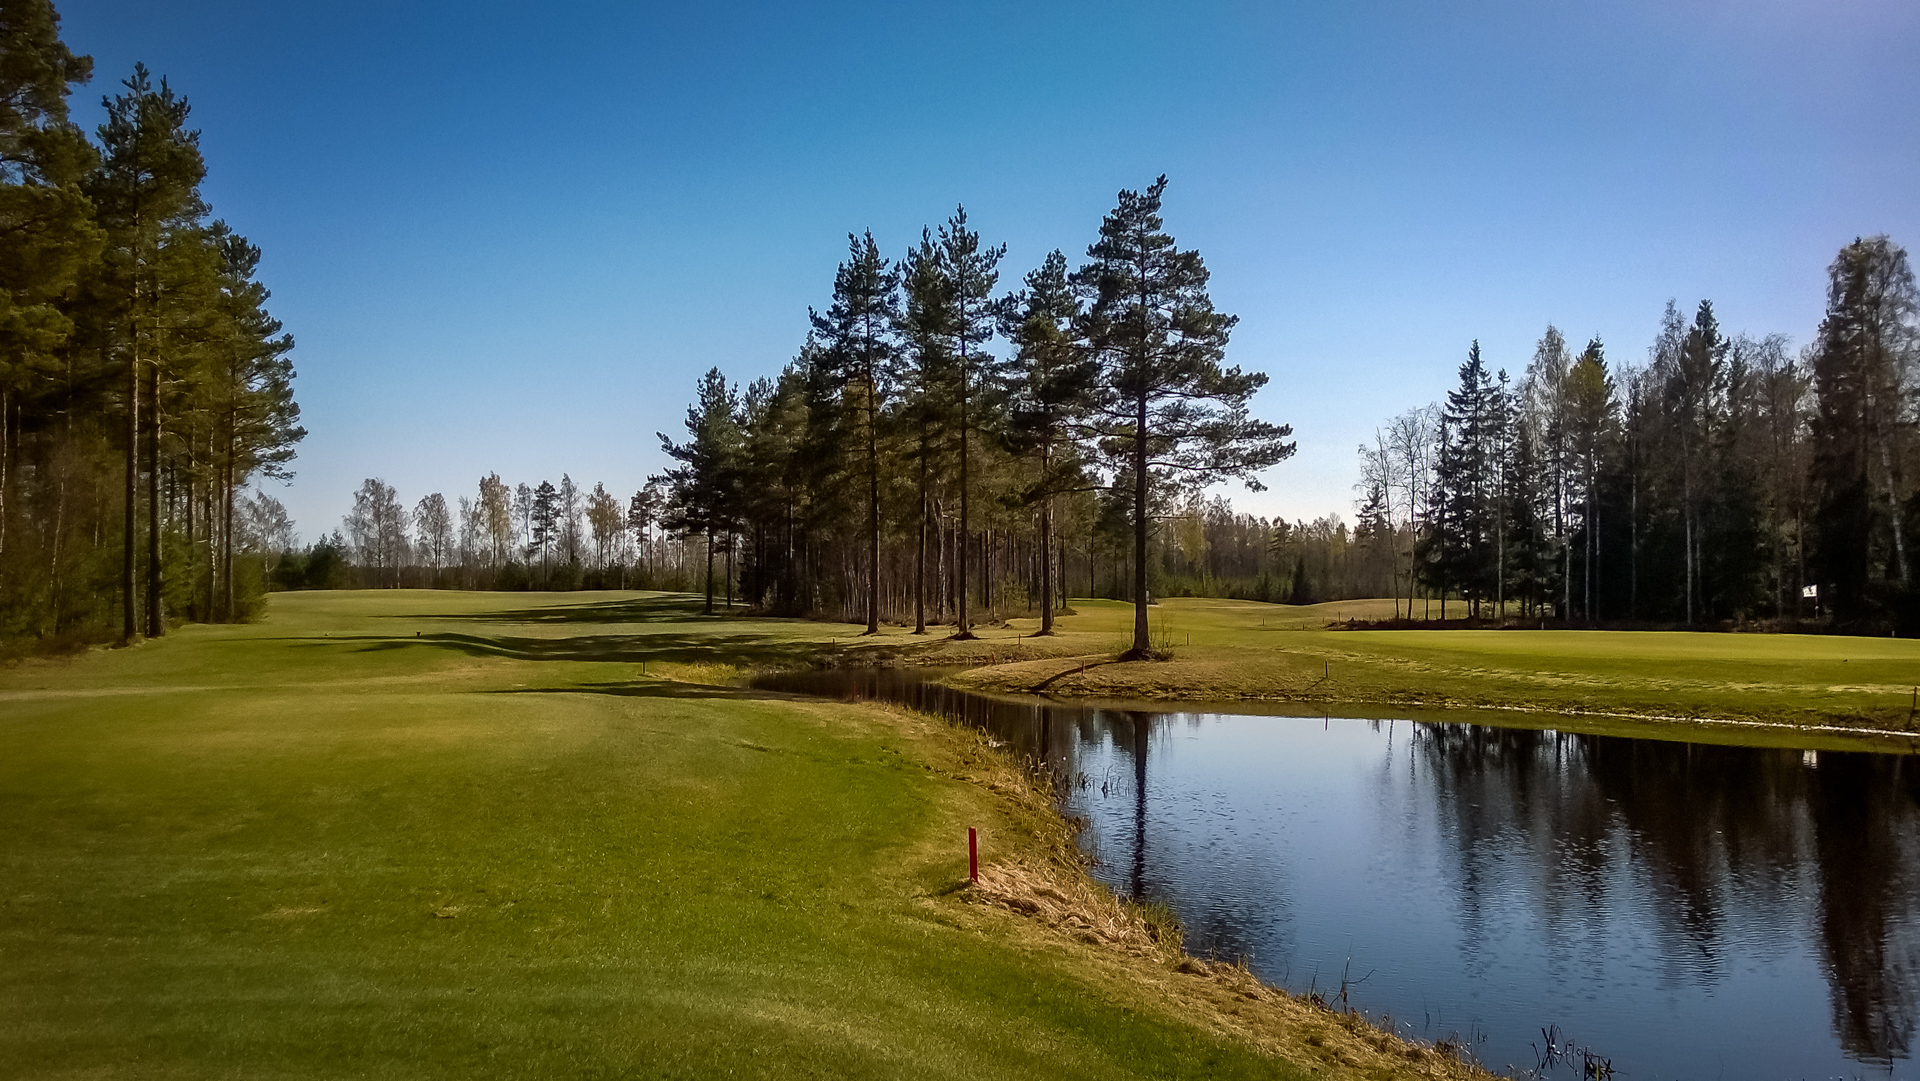 Hanko Finland Golf May 2014